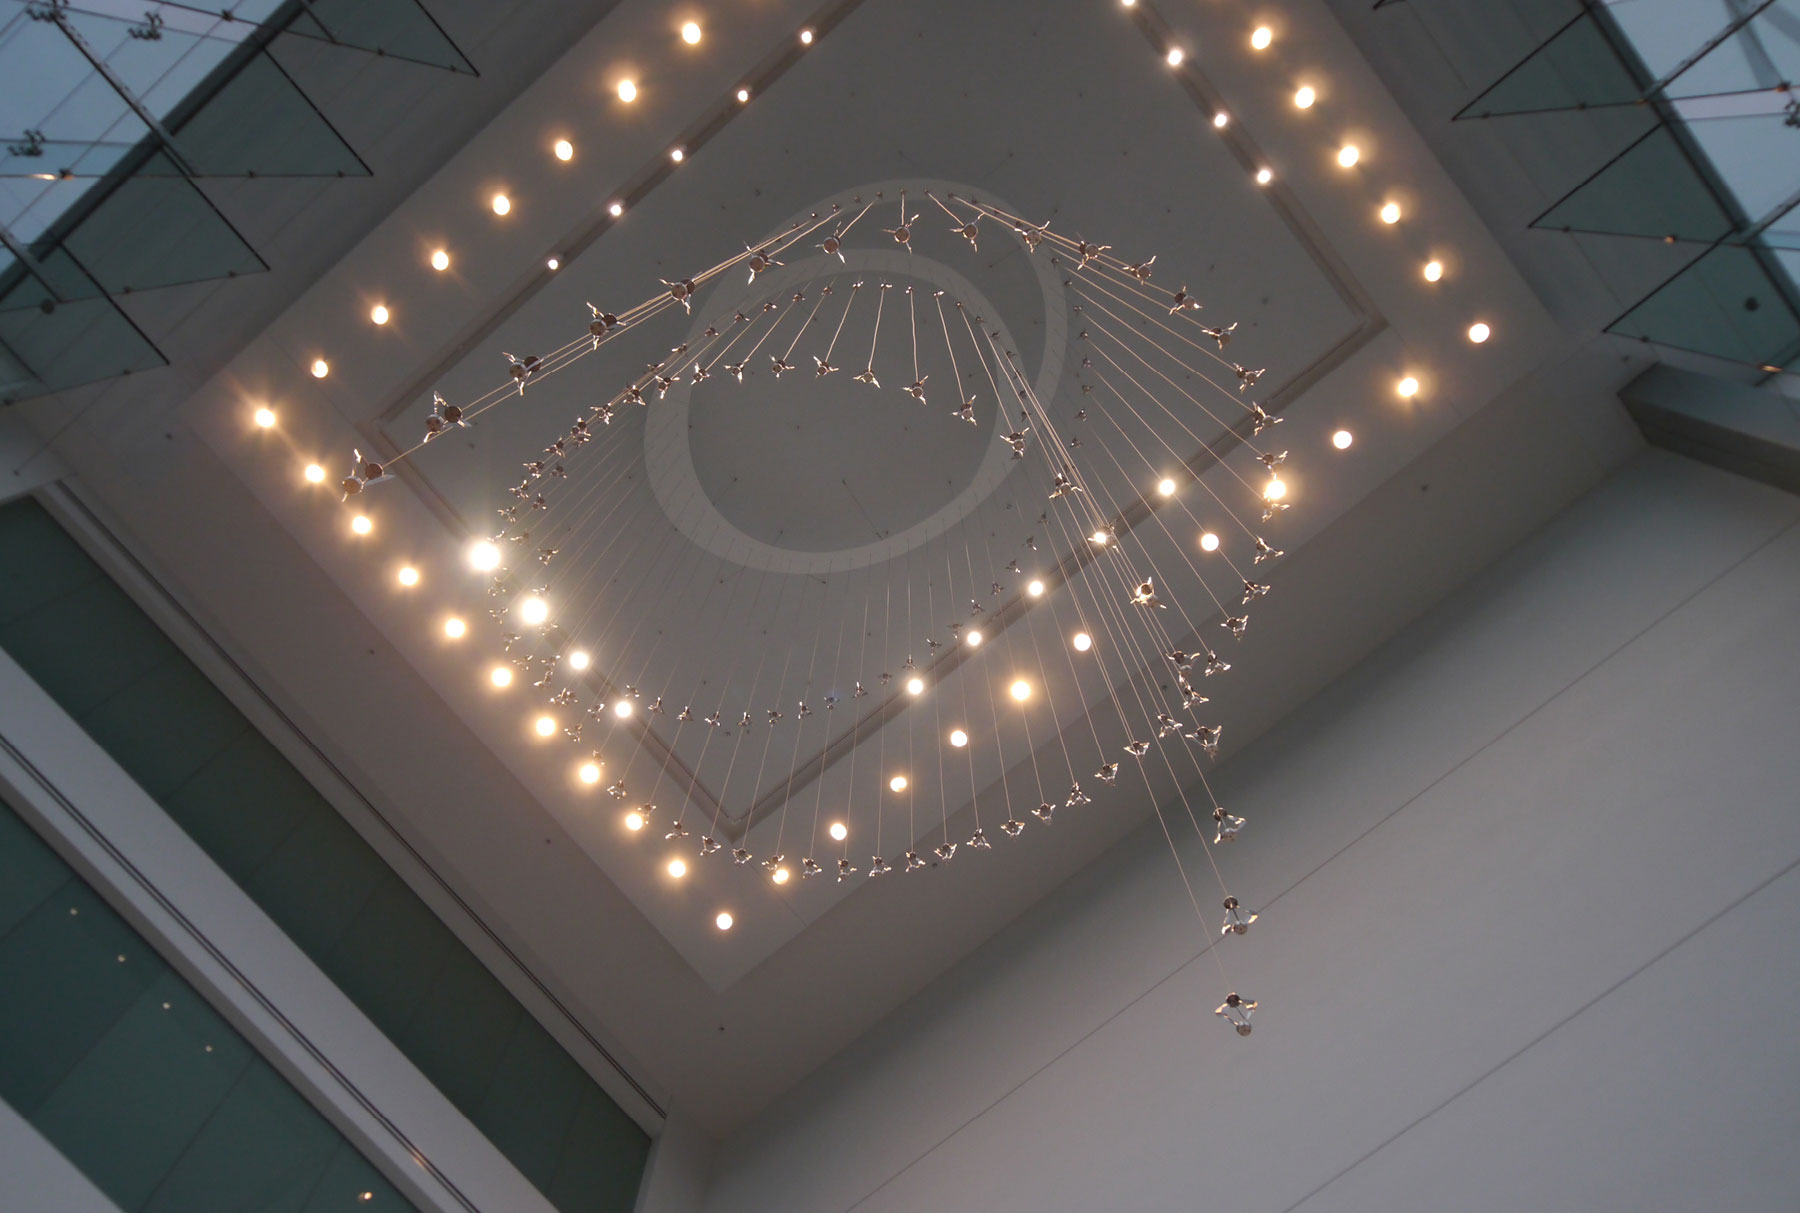 Chandelier made with kinetic pendants of brushed steel by Gensler with Arktura Solutions Studio for Bayer HQ